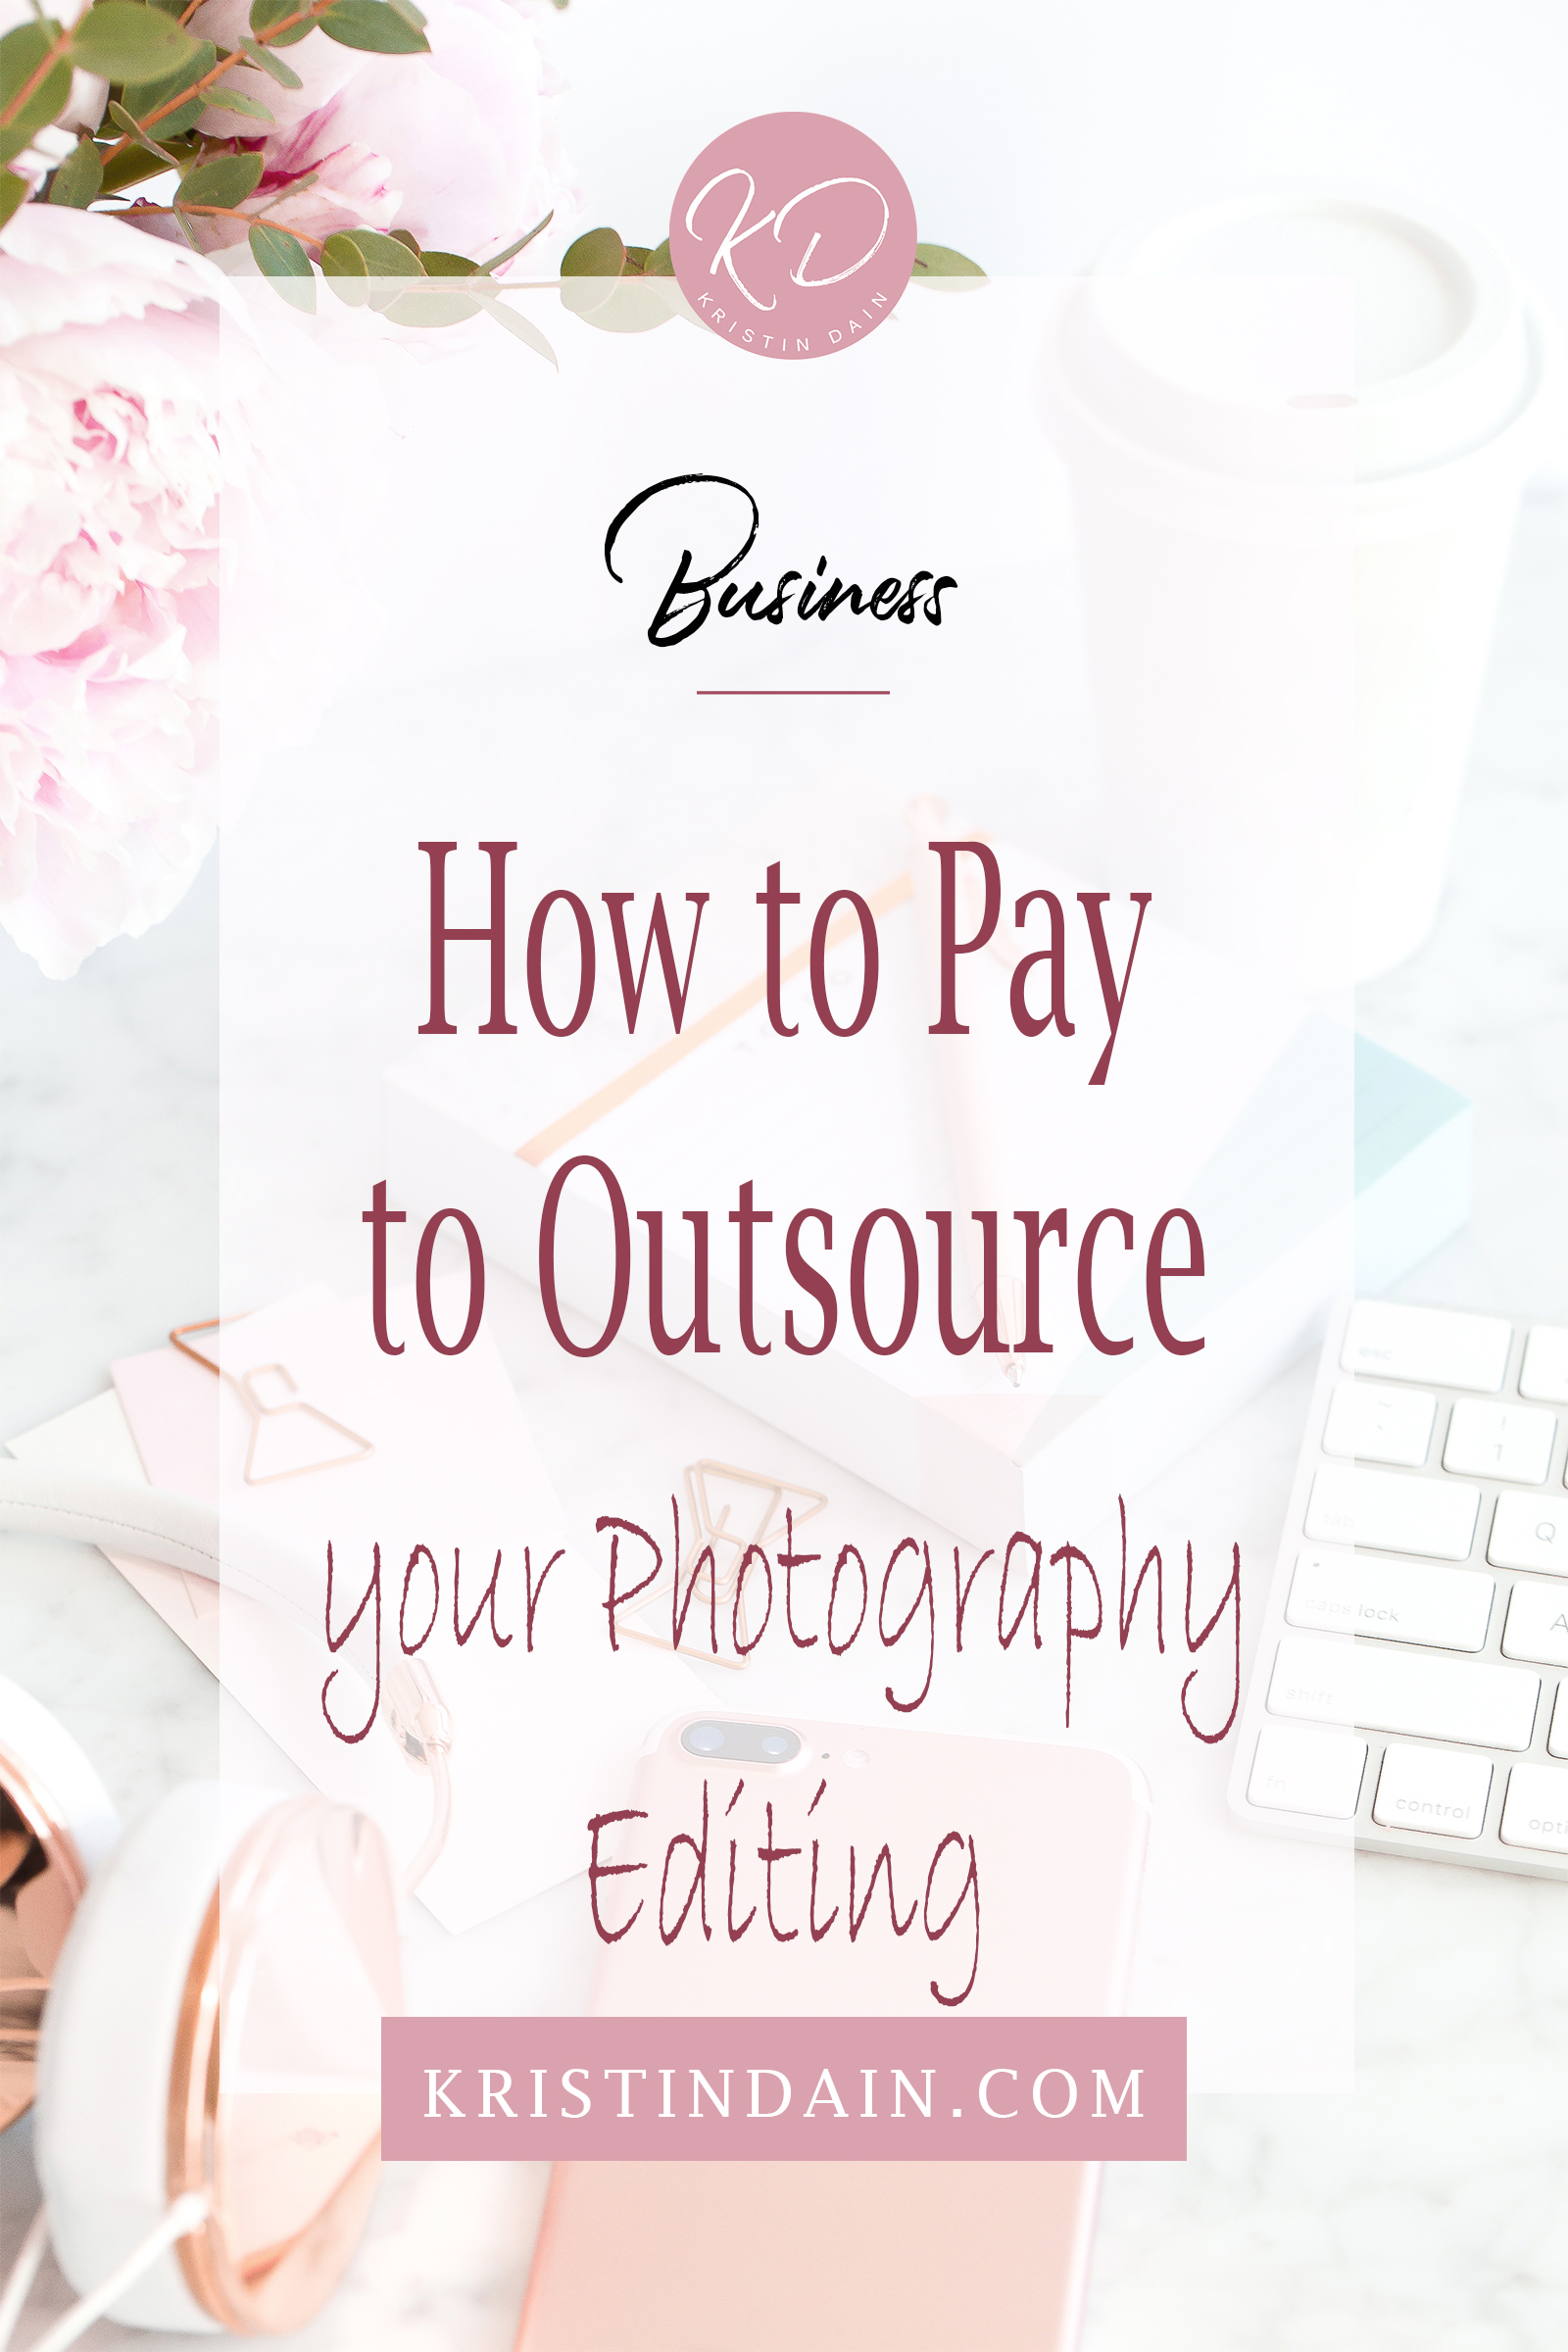 how to pay to outsource your photo editing.jpg